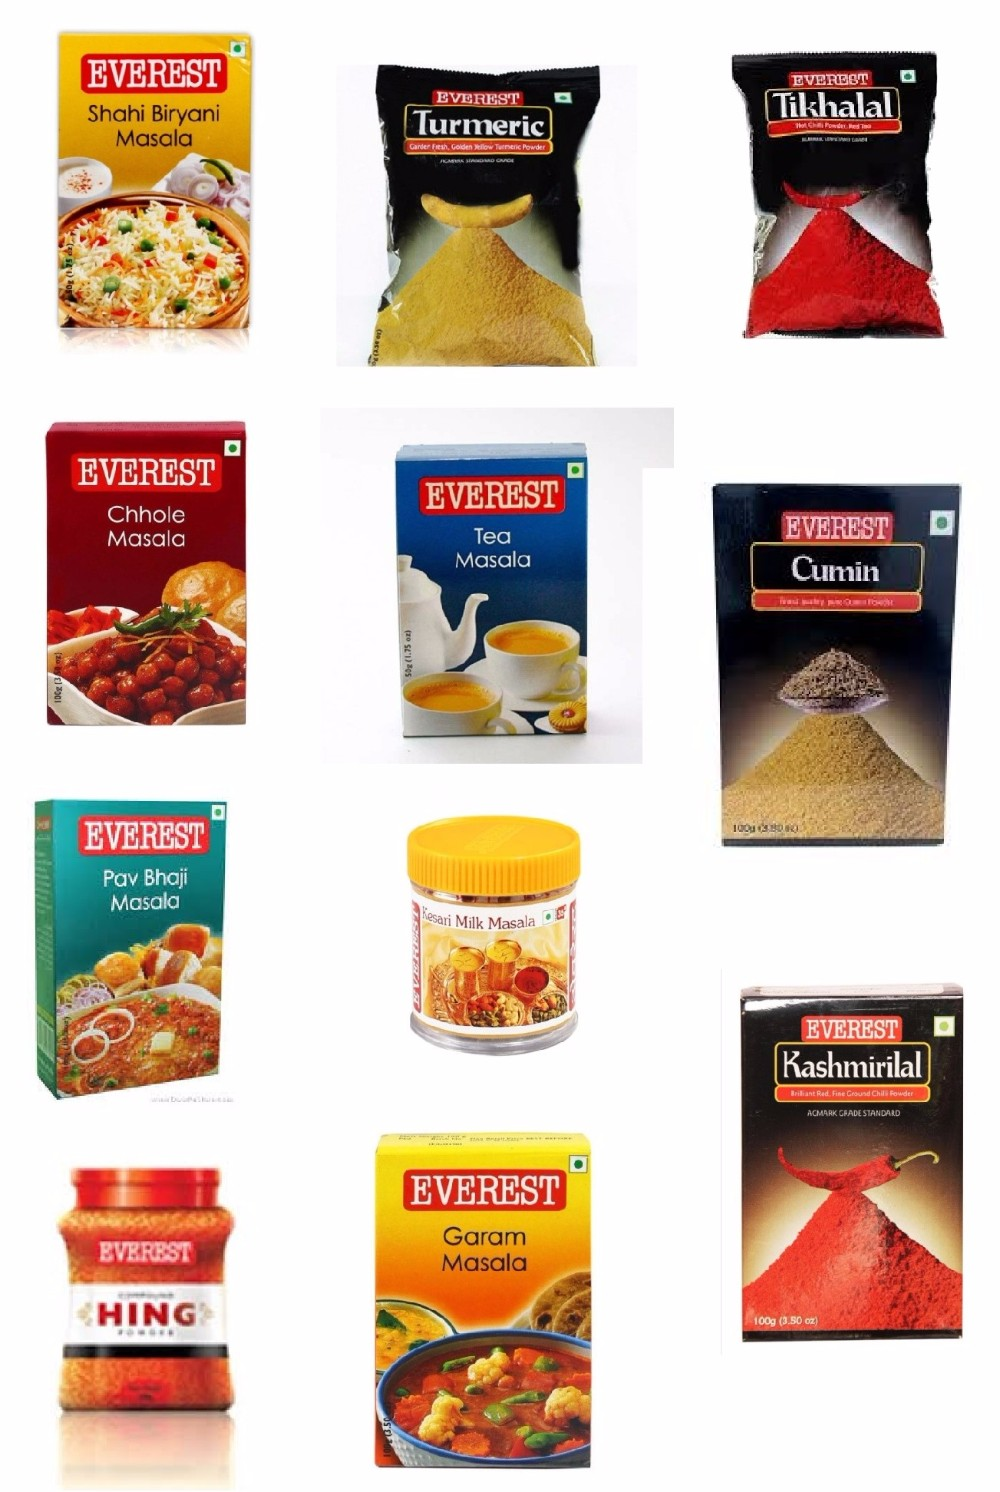 Everest Masala : Blended Spices : Ground Spices : 100 GM (3.5oz) : Indian Spices